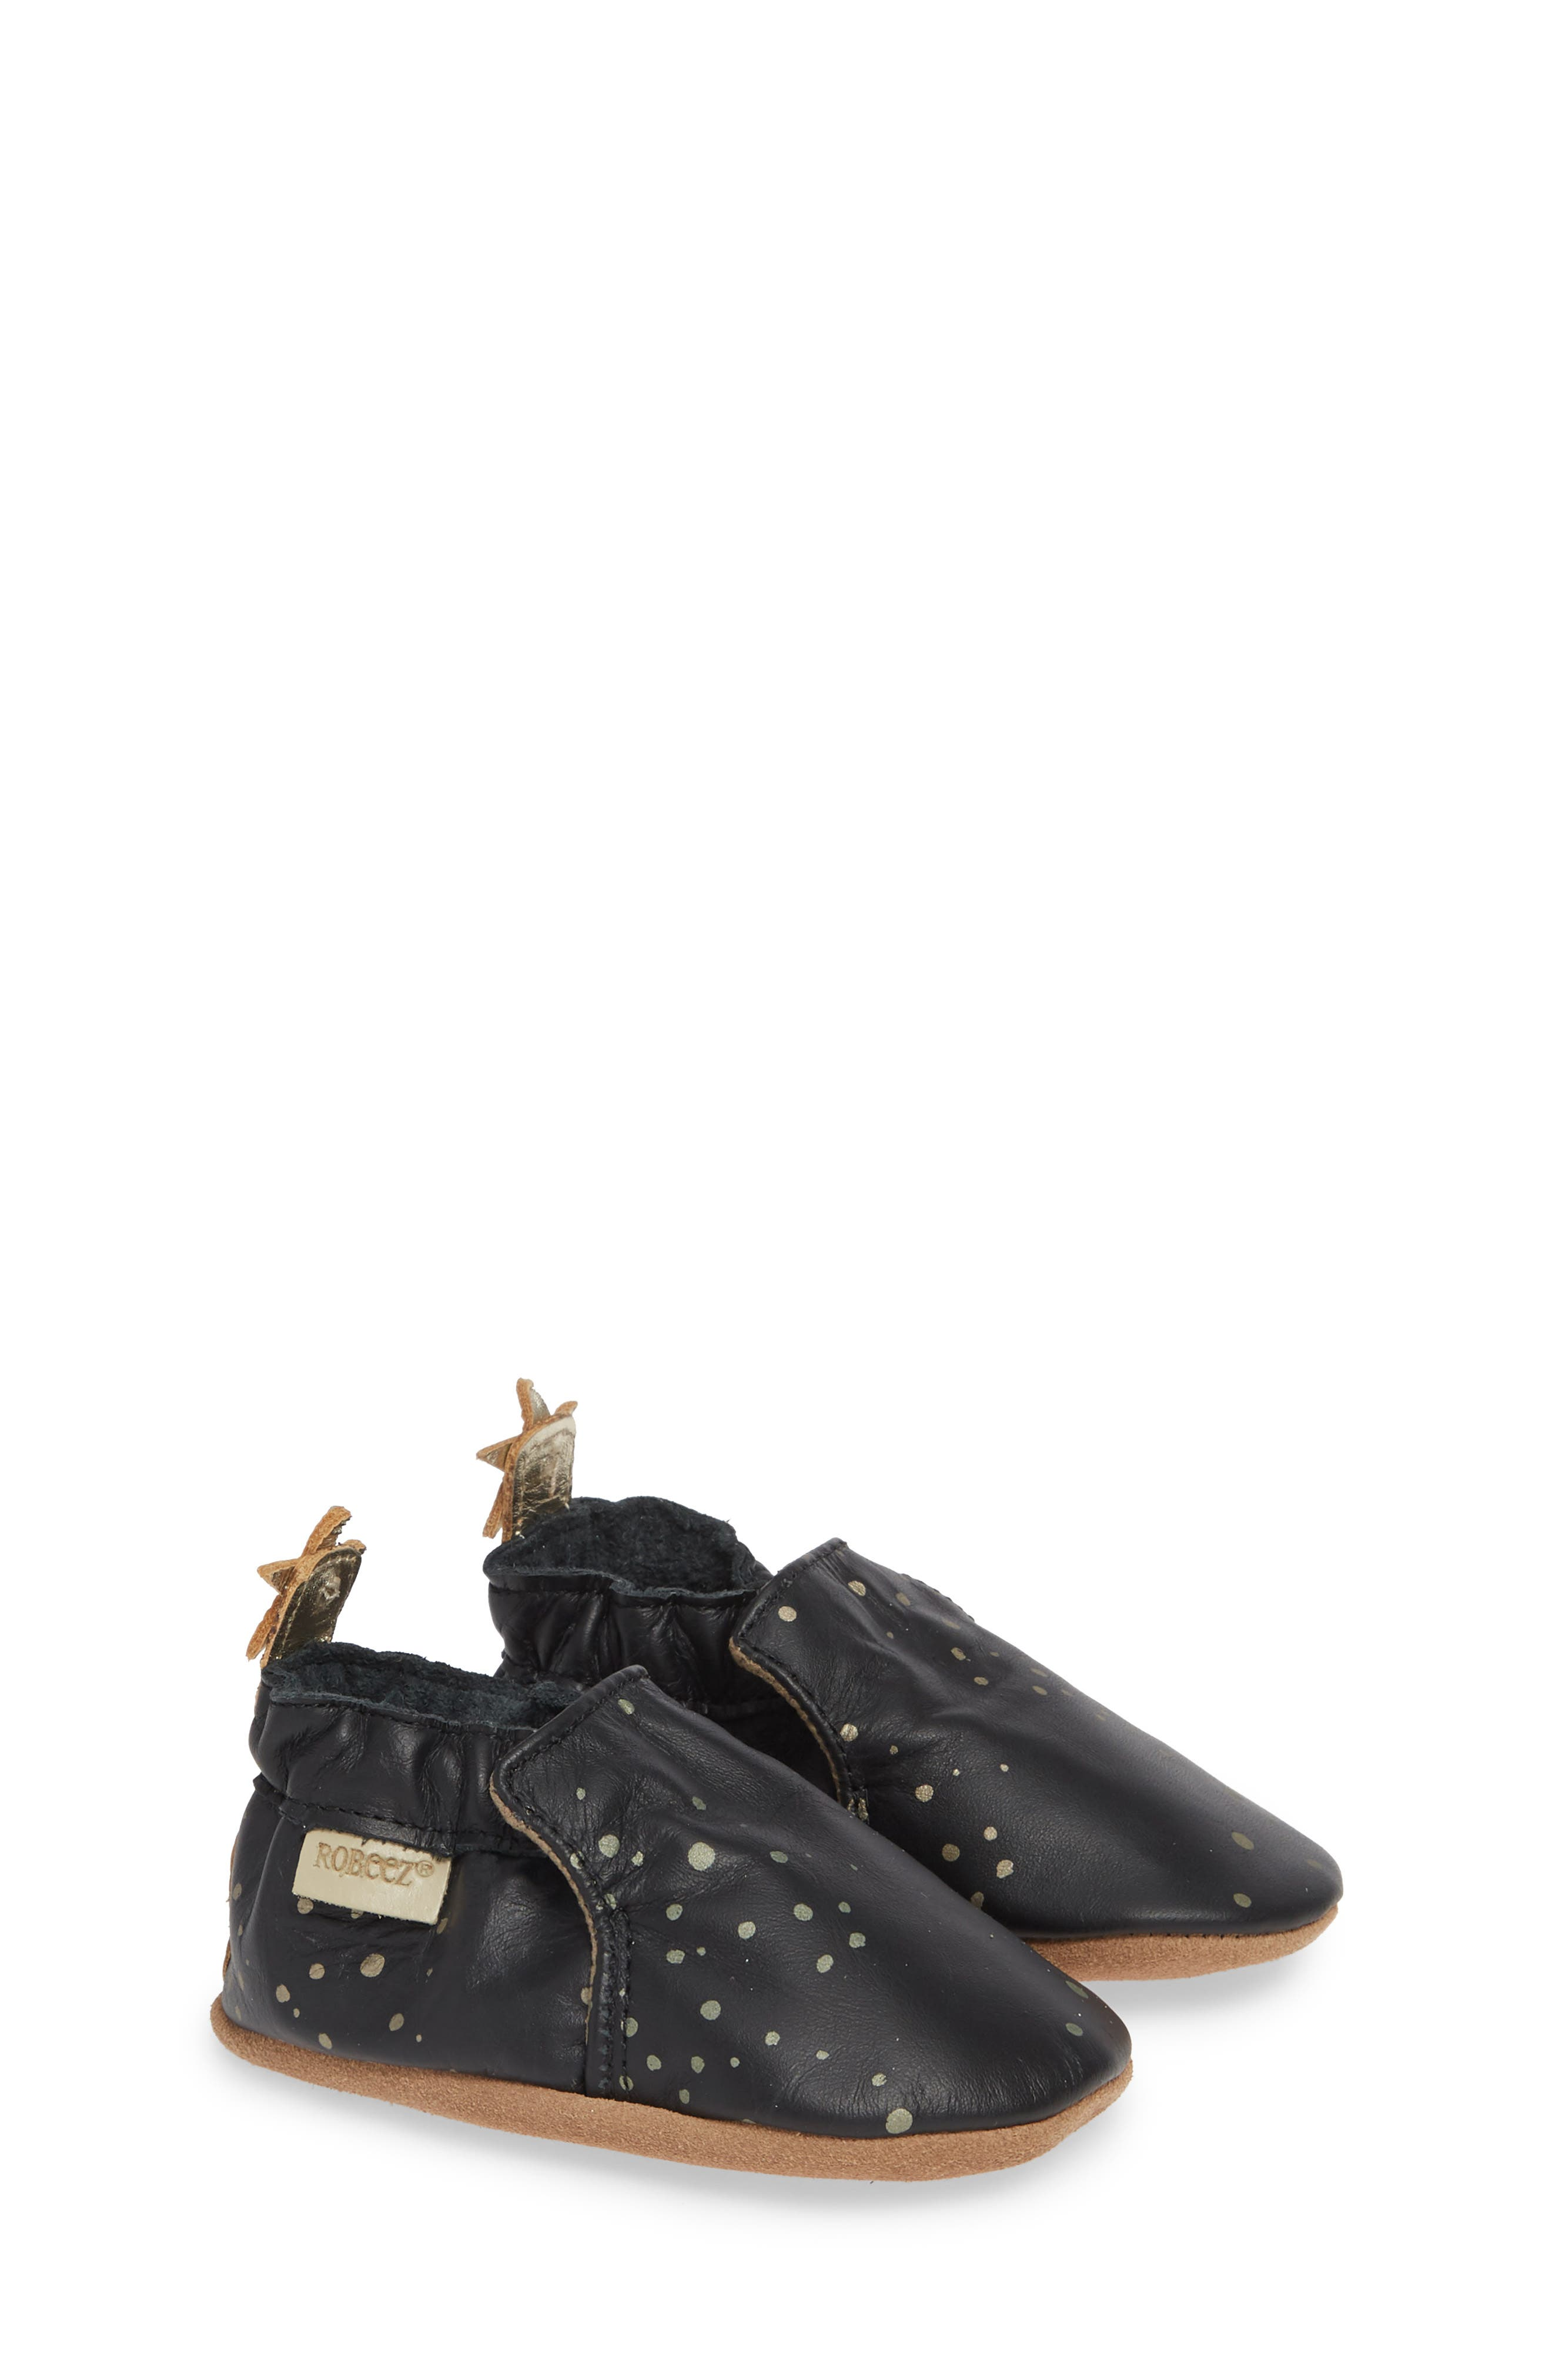 ROBEEZ<SUP>®</SUP>, Galaxy Girl Moccasin Crib Shoe, Alternate thumbnail 2, color, BLACK